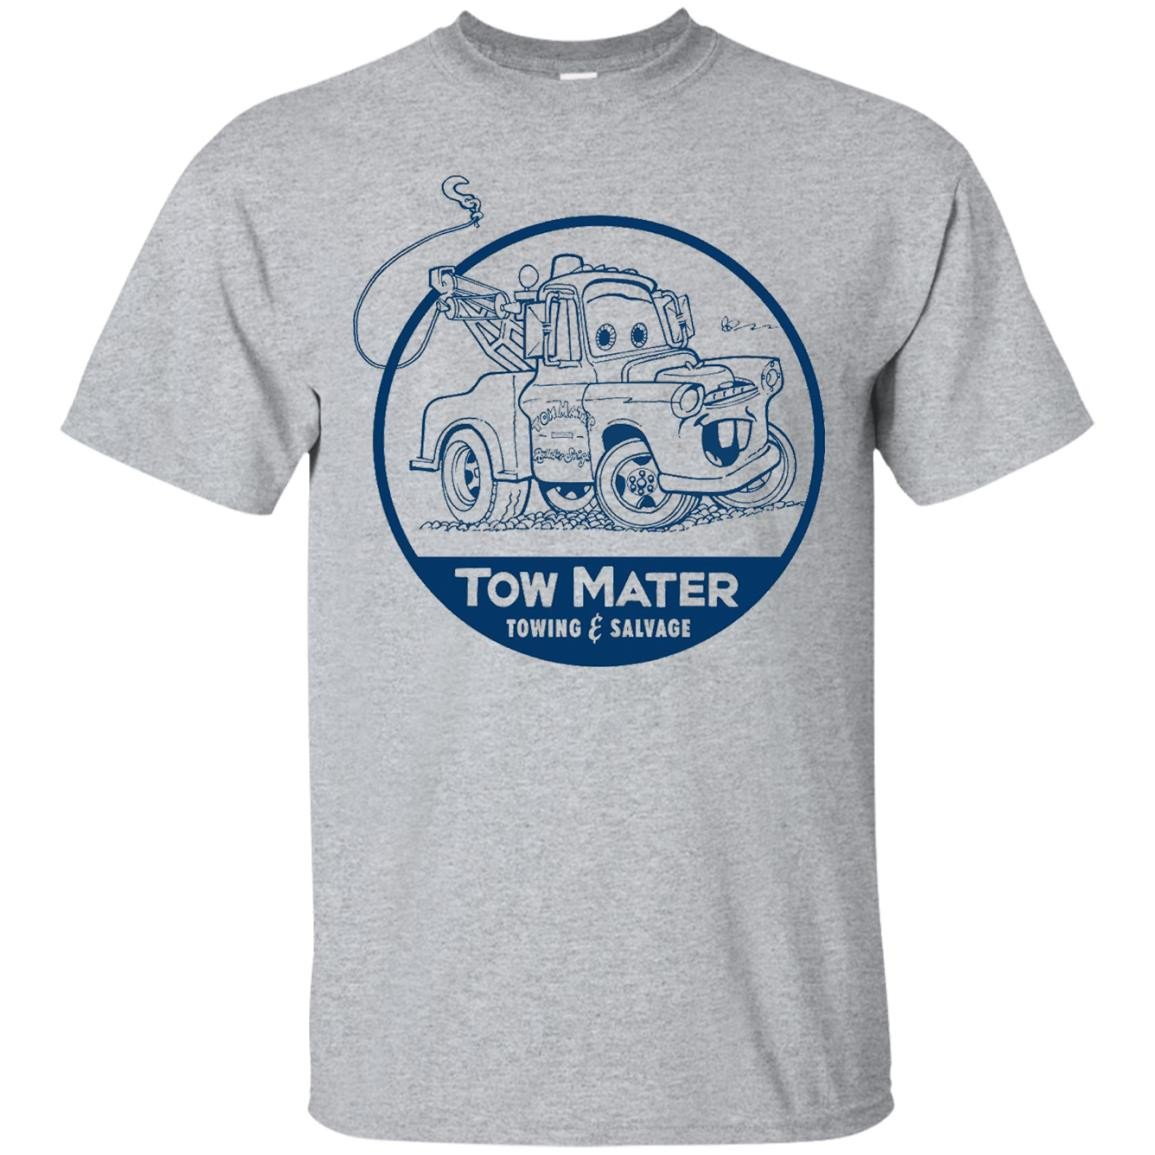 Disney Pixar Cars Tow Mater Salvage Badge Graphic T-Shirt